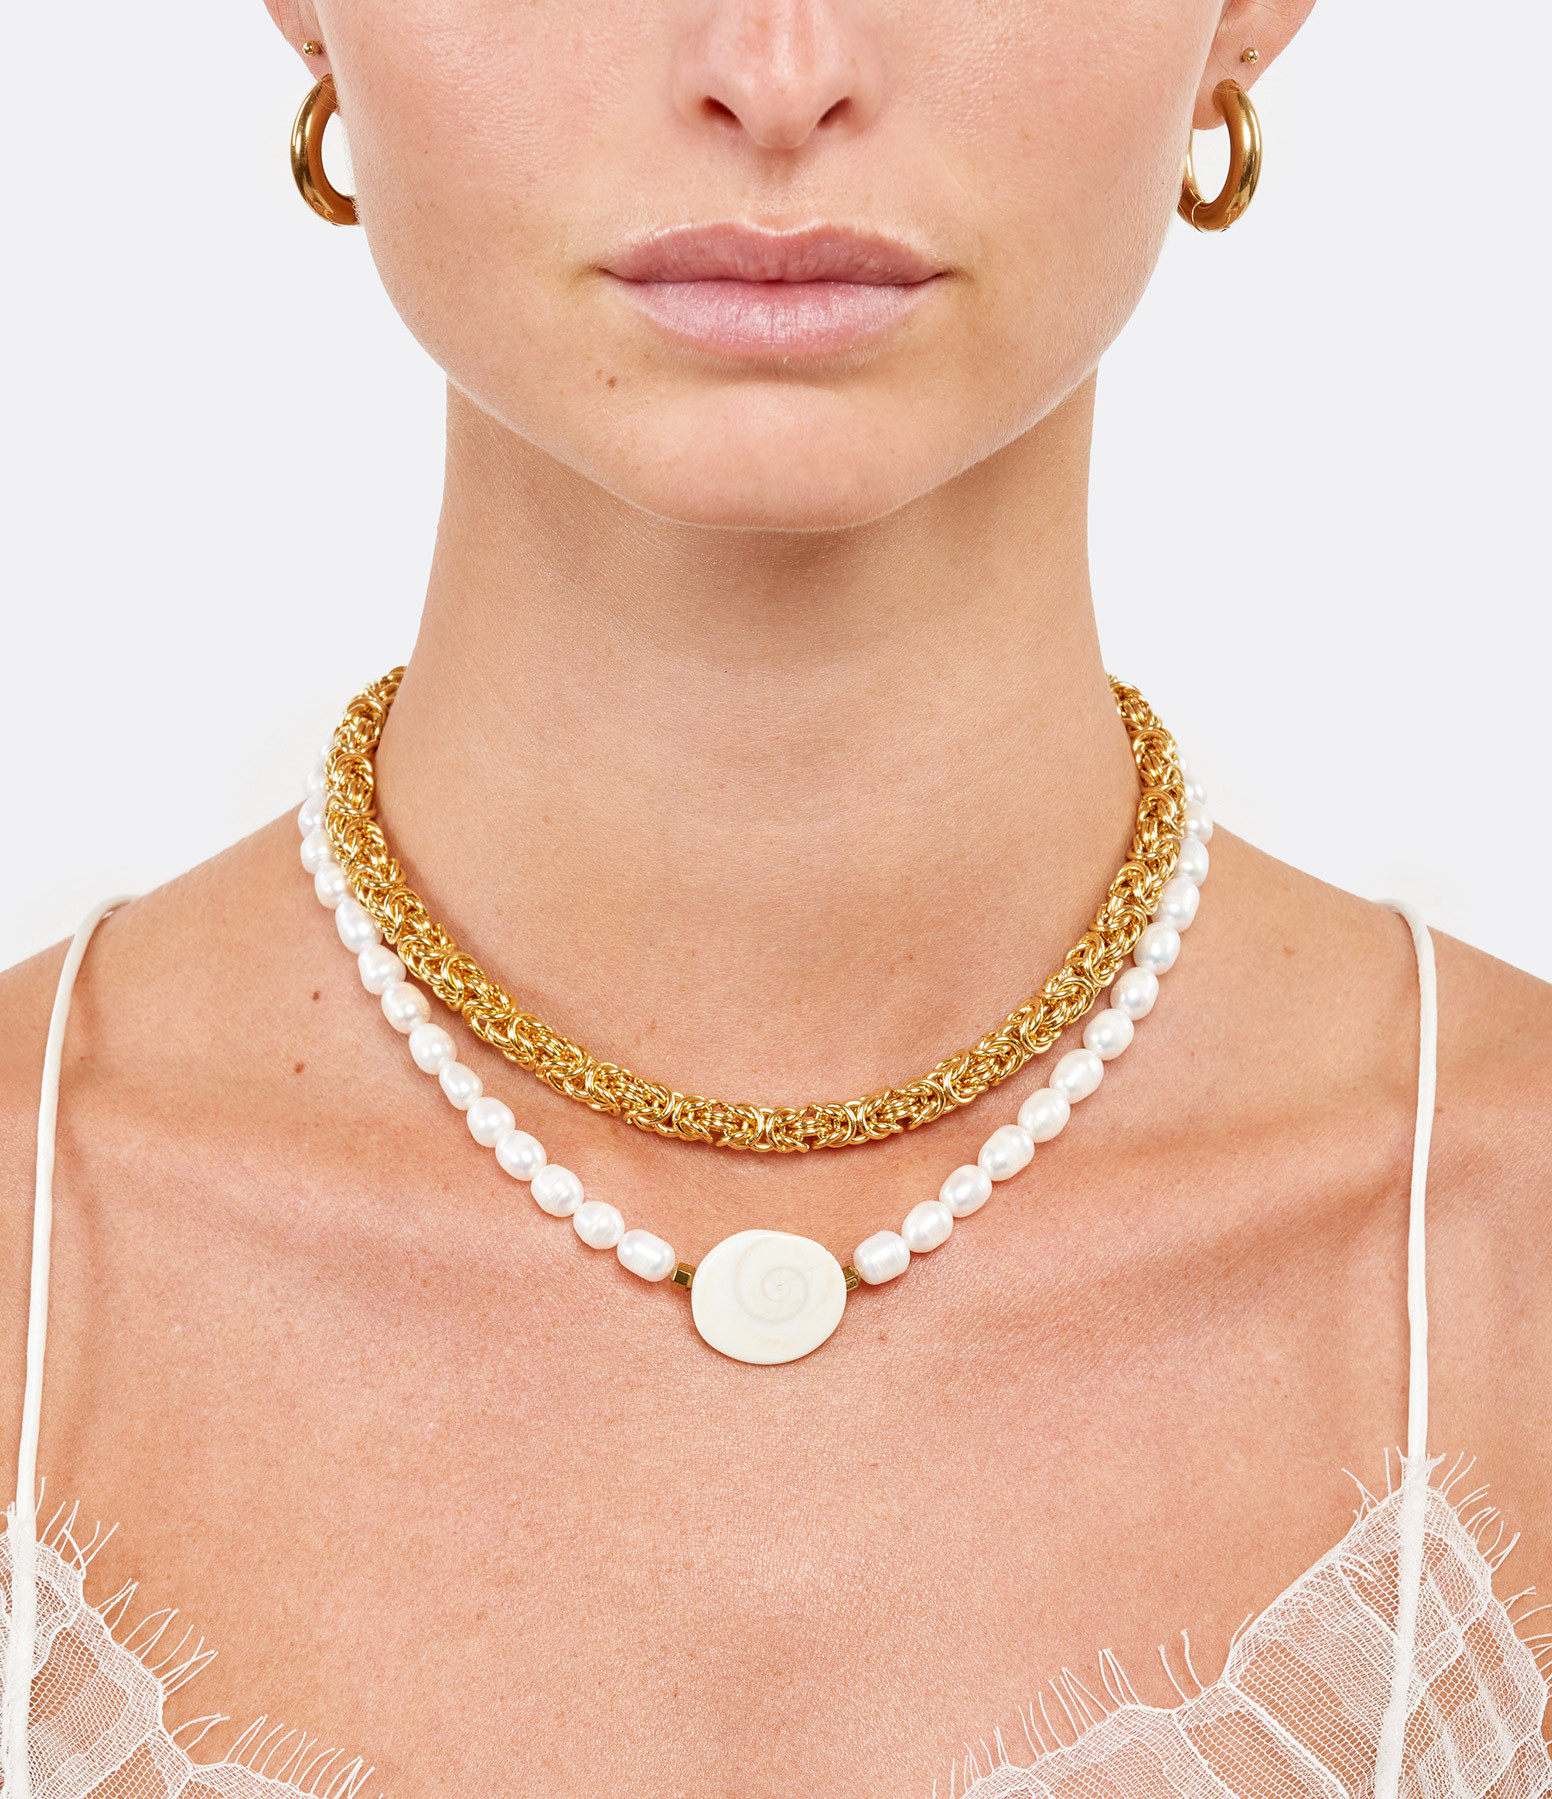 SHAKER JEWELS - Collier Antic Plaqué Or